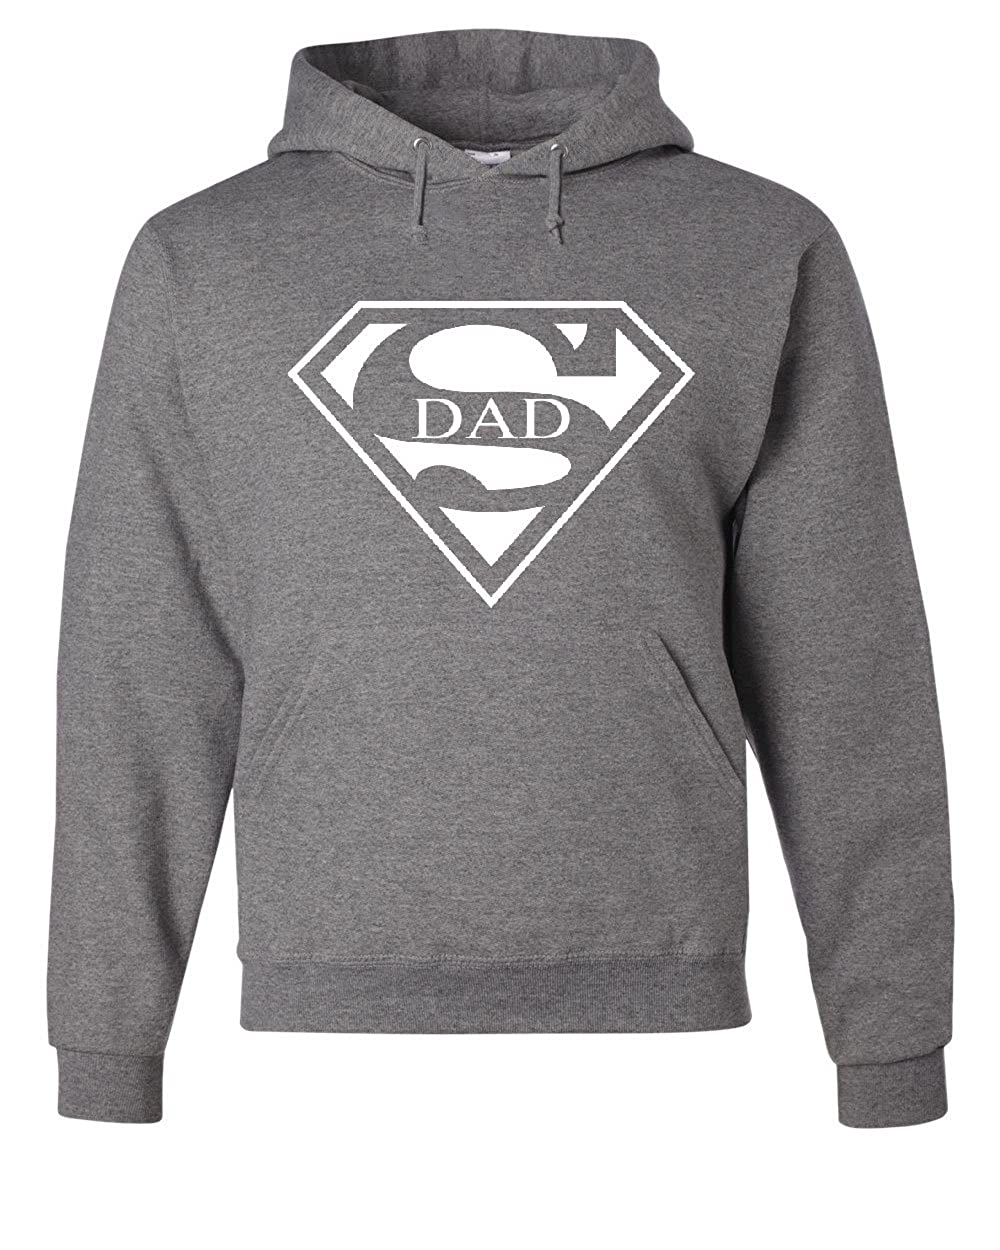 6f39d55a Tee Hunt Super Dad Hoodie Funny Superhero Father's Day Sweatshirt at Amazon  Men's Clothing store: